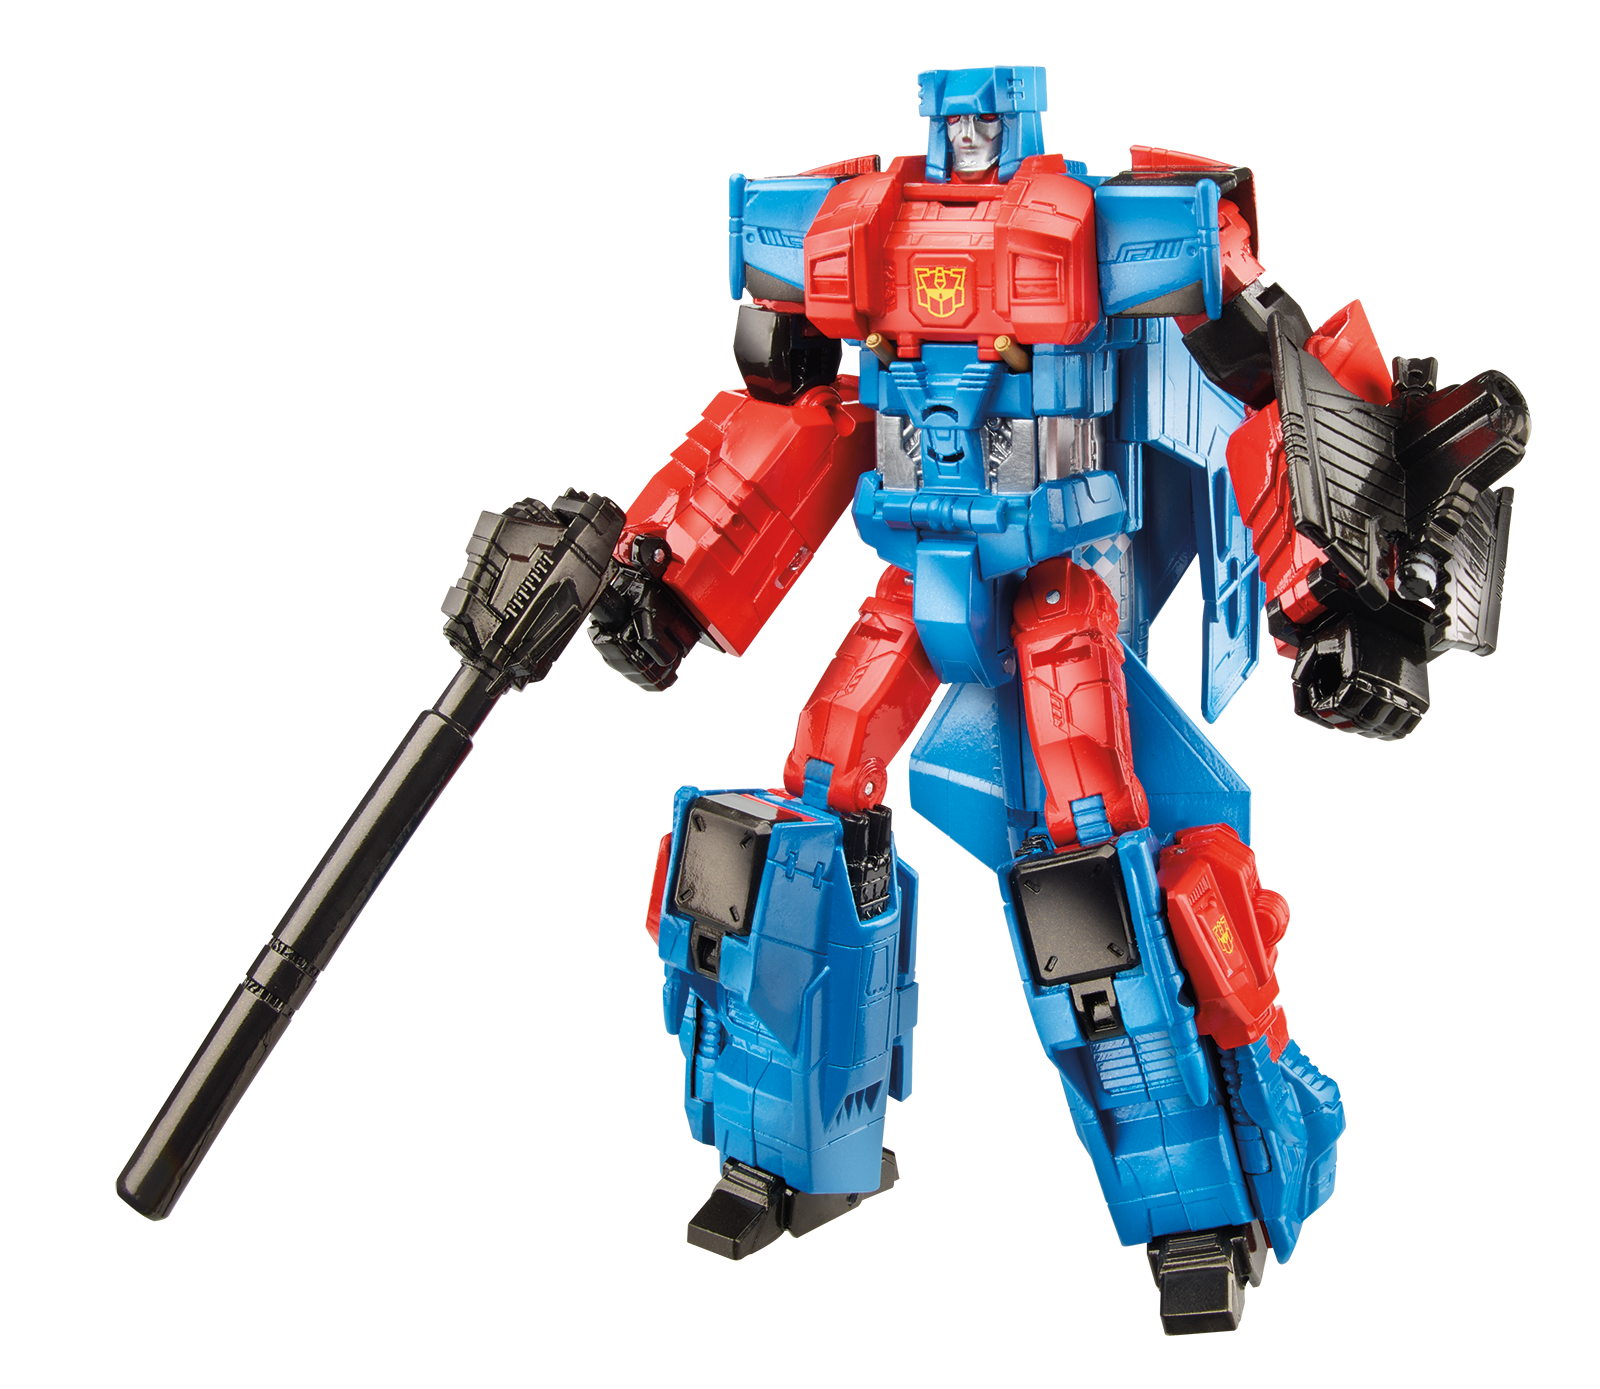 Clip combiner wars thunder. Generations g silverbolt toy